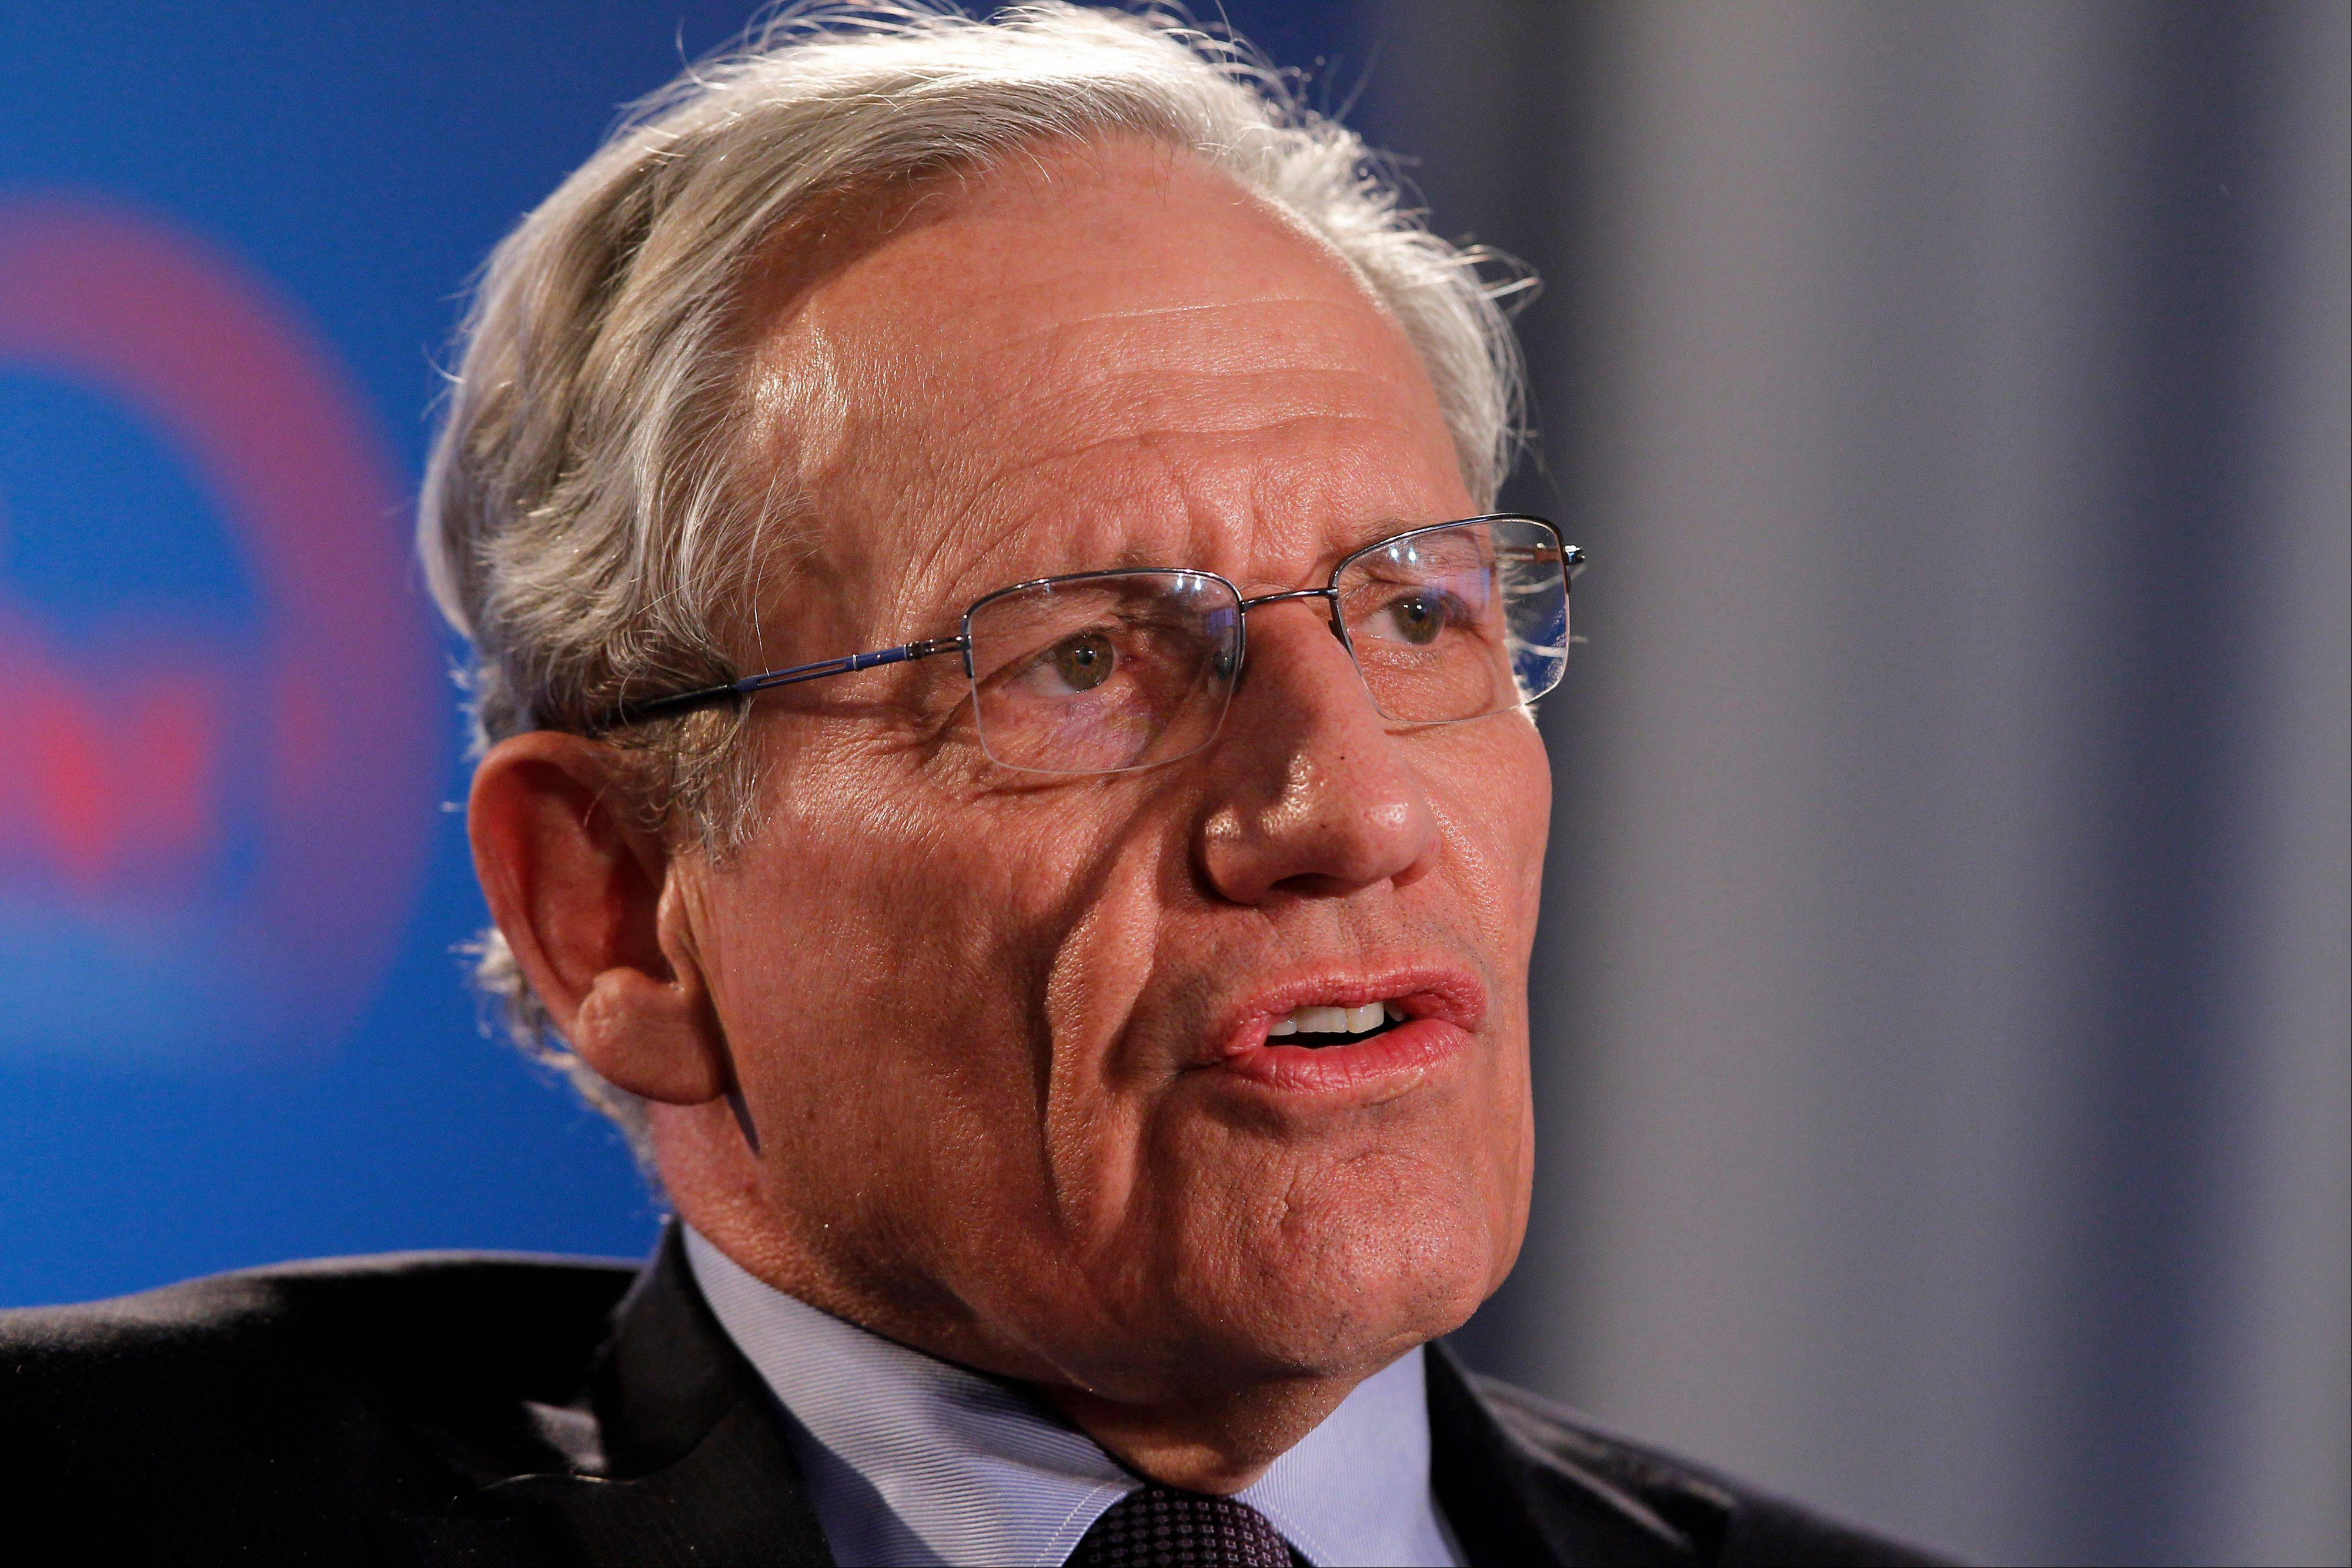 "The next book by award-winning investigative reporter and best-selling author Bob Woodward will document how President Barack Obama and congressional leaders responded to the economic crisis and where we stand now. Publisher Simon & Schuster announced Tuesday the book will be called ""The Price of Politics"" and will come out Sept. 11."